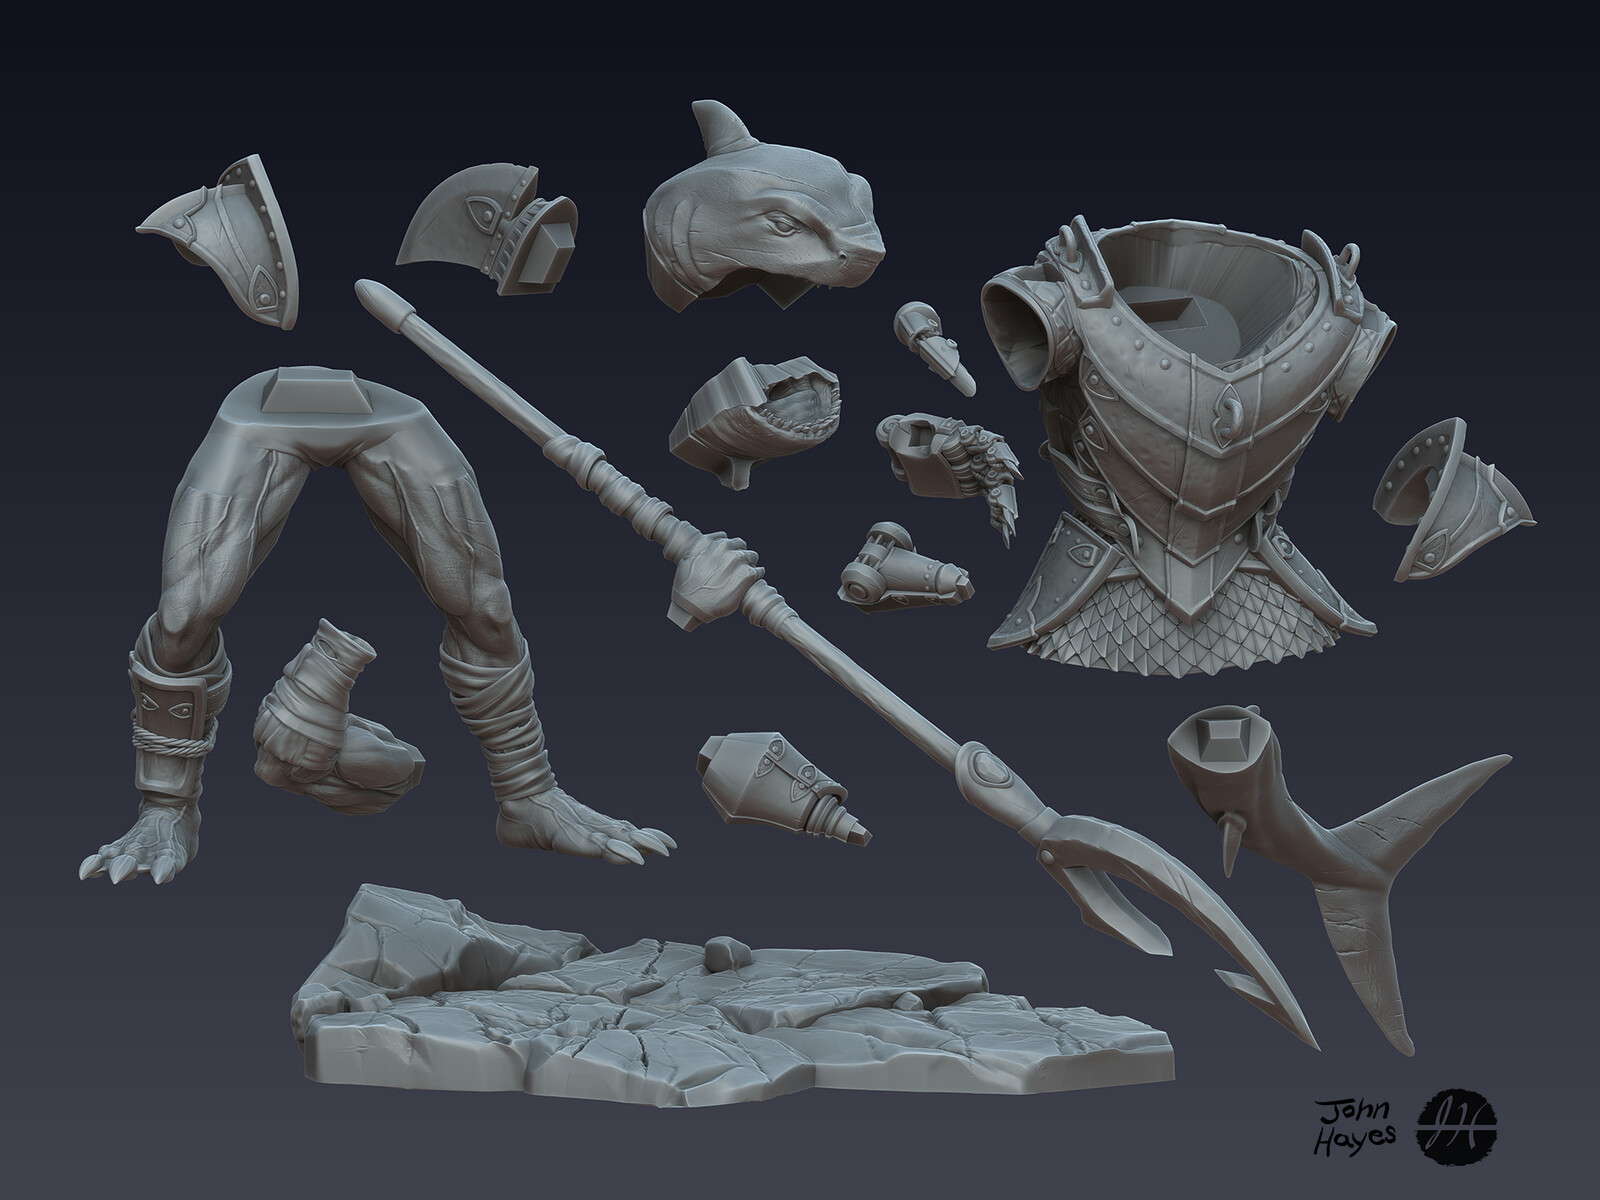 Zbrush part for 3D print.